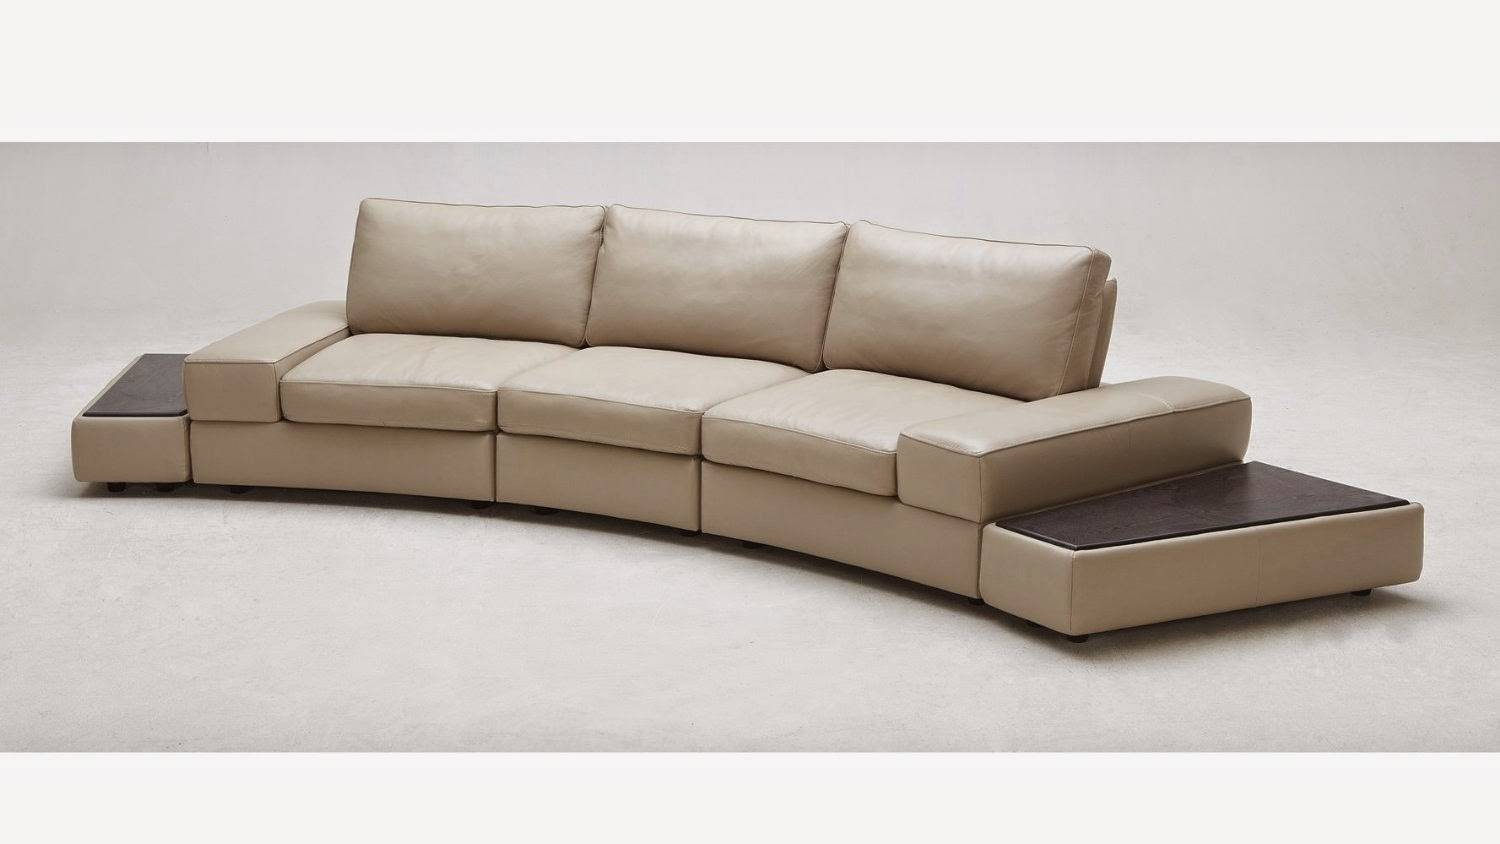 Furniture: Alluring Unique Curved Couches With Classic Design Home Inside Conversation Sofa Sectional (View 16 of 30)